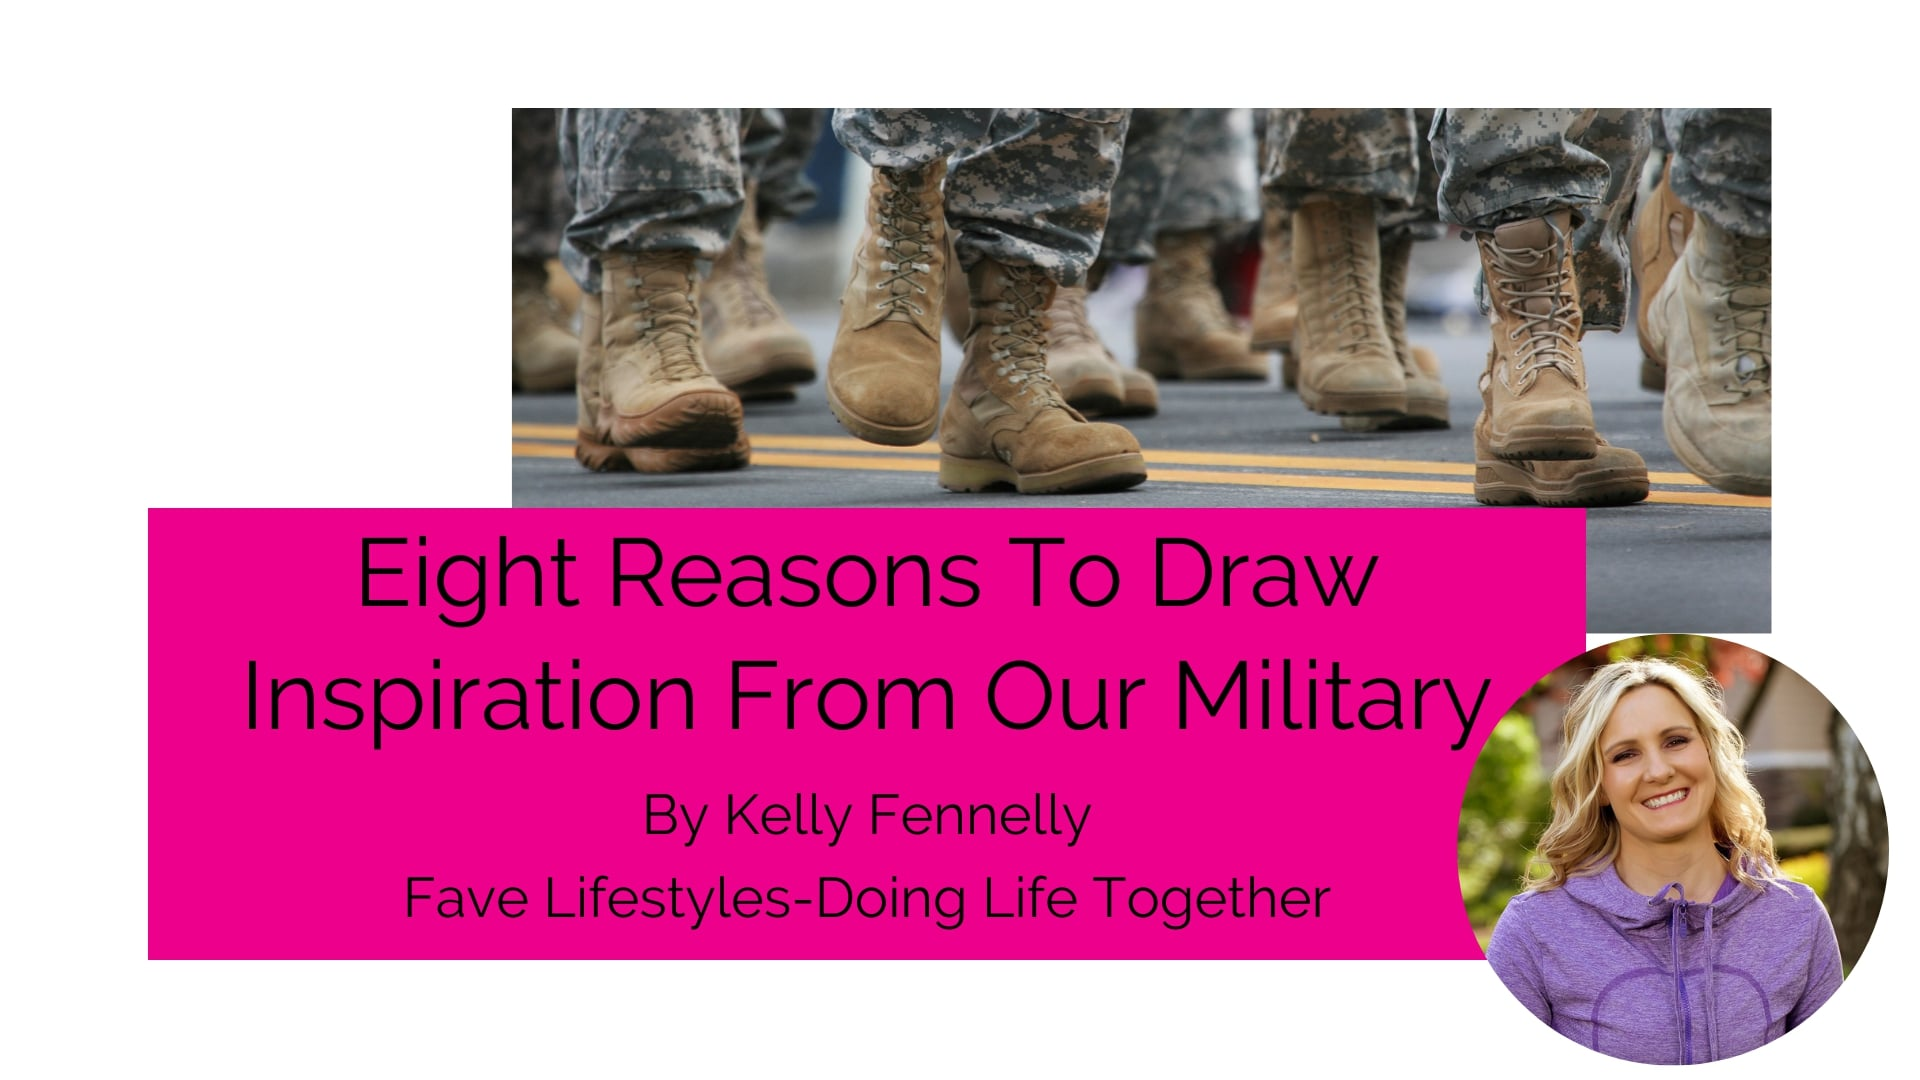 Eight Reasons To Draw Inspiration From Our Military